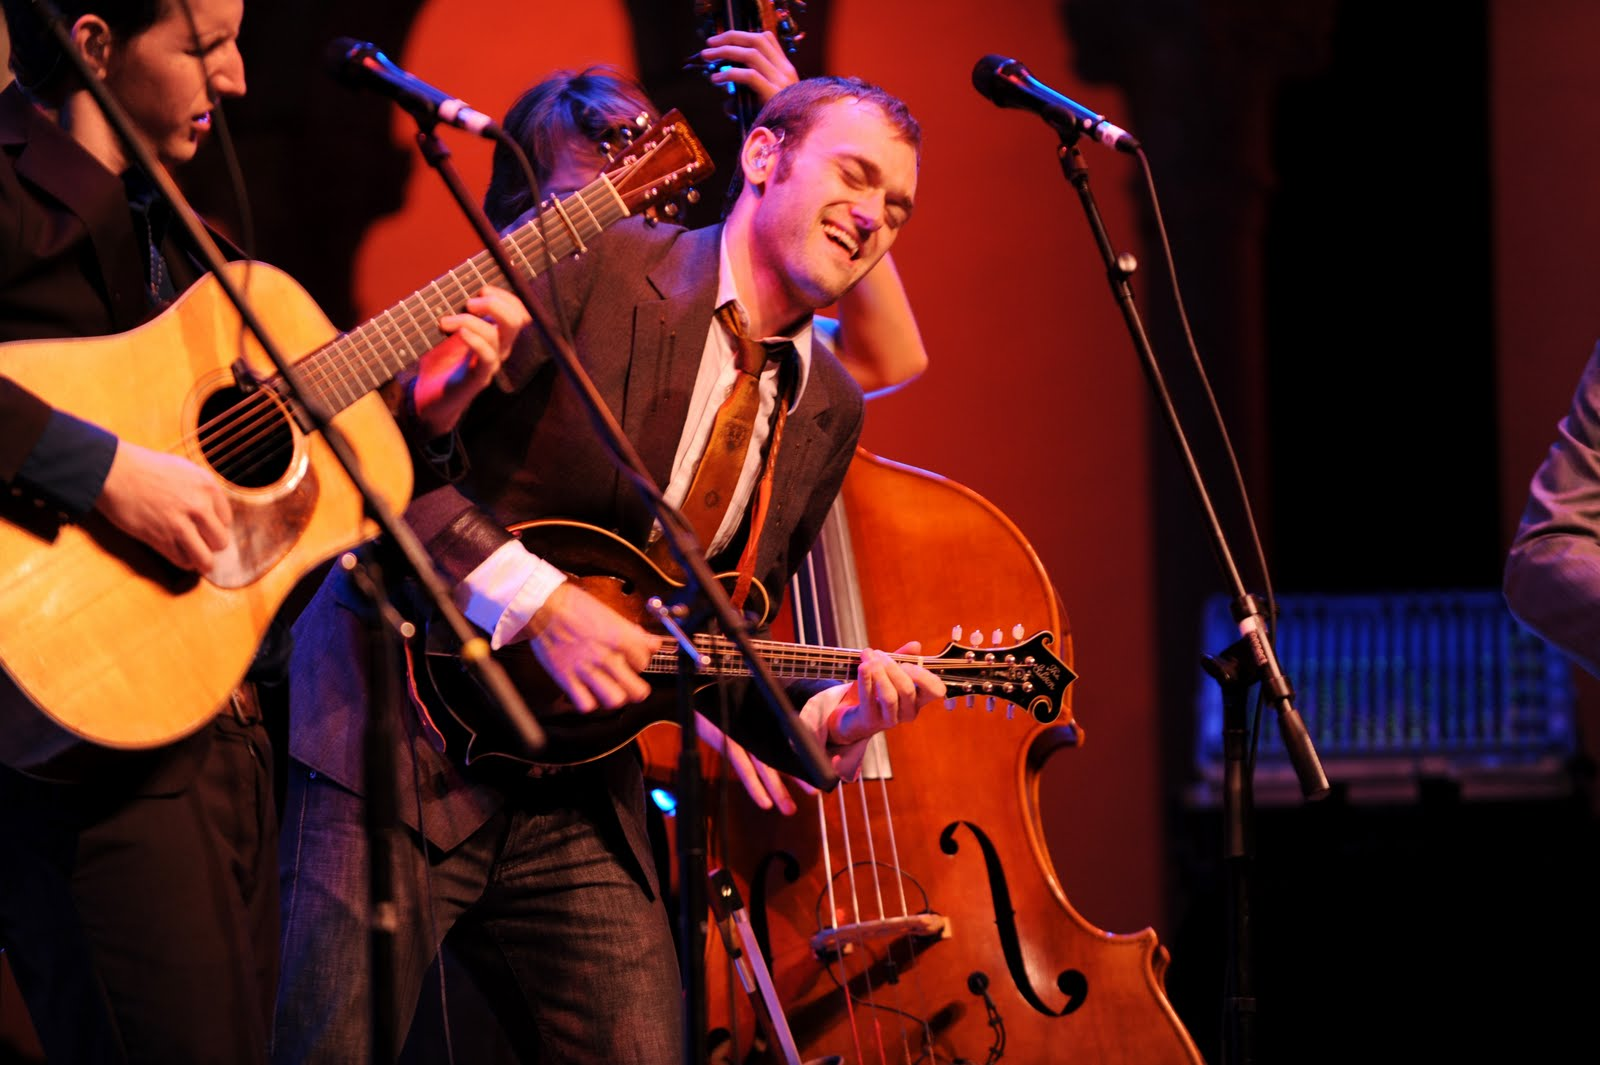 Photostalk: Rocking Bluegrass